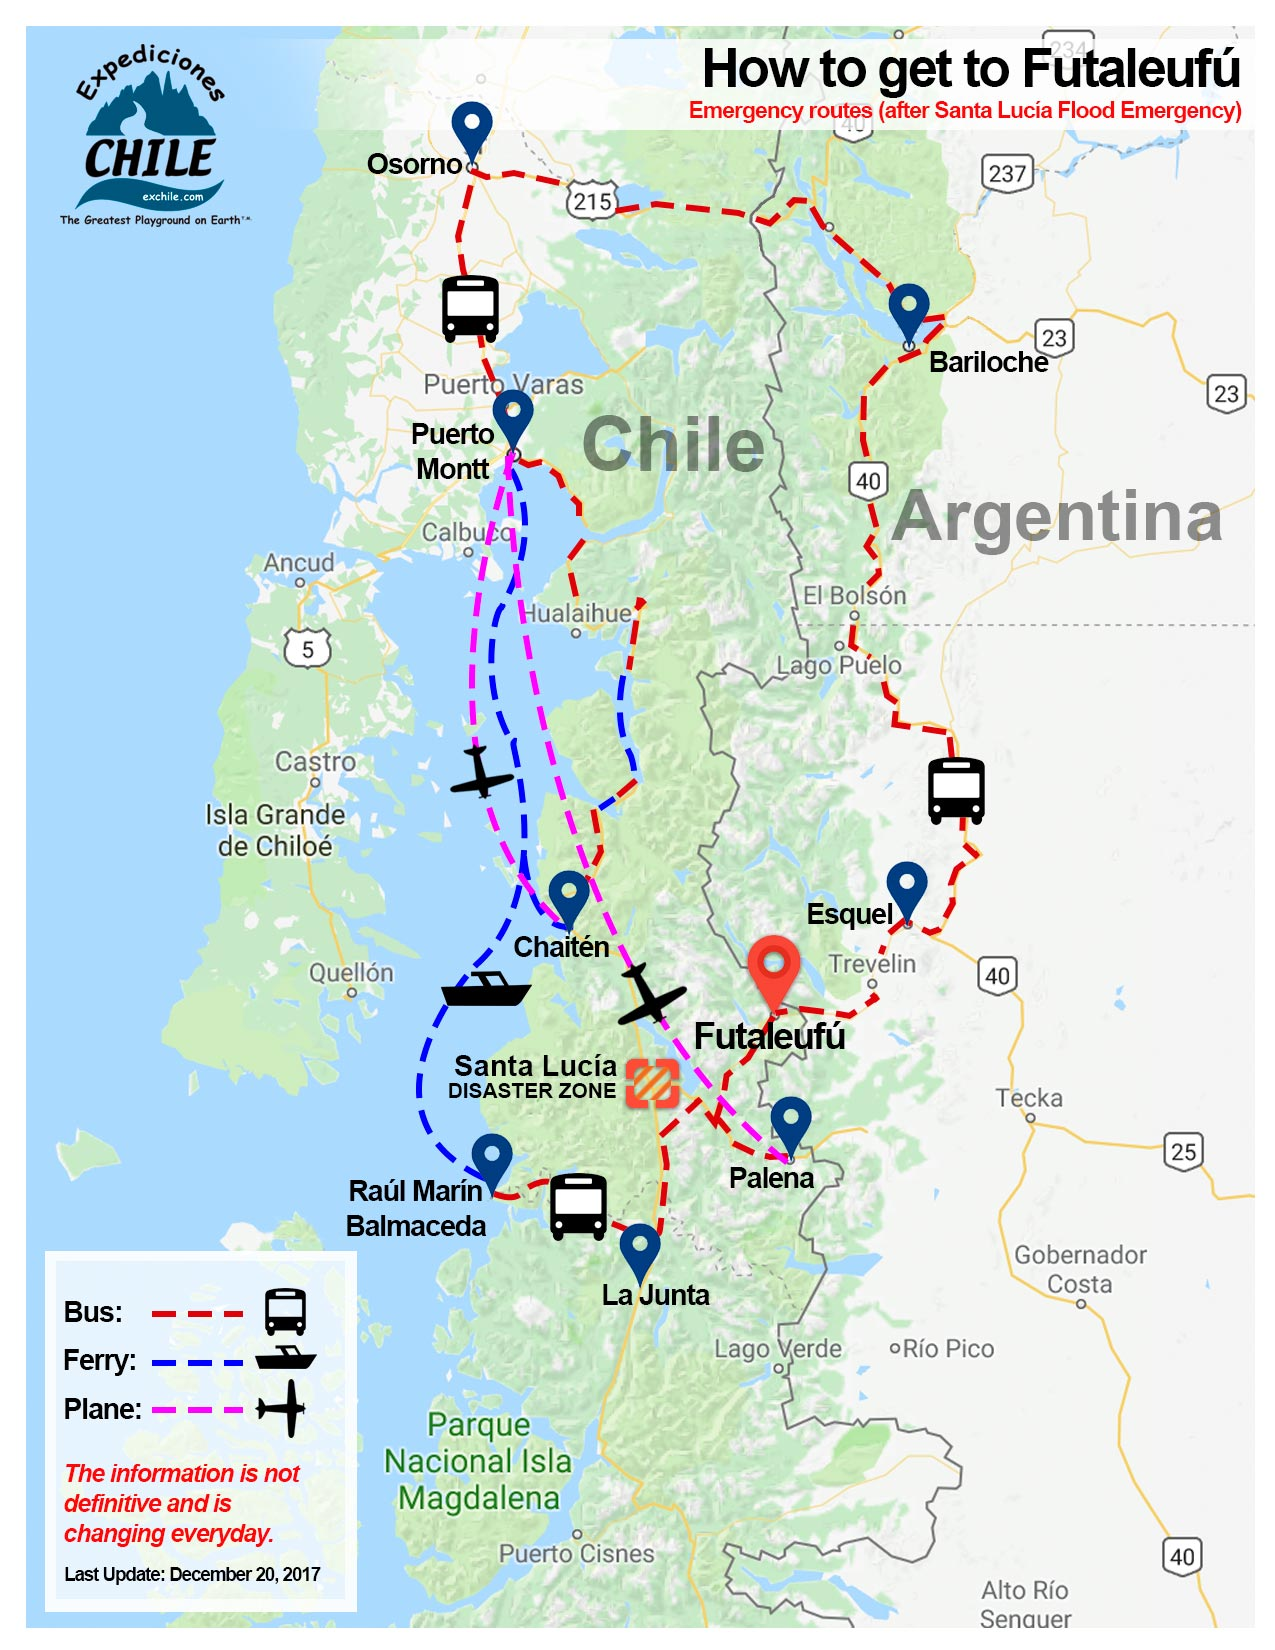 Patagonia Travel Guide: Adventure Vacations, Trips, Maps